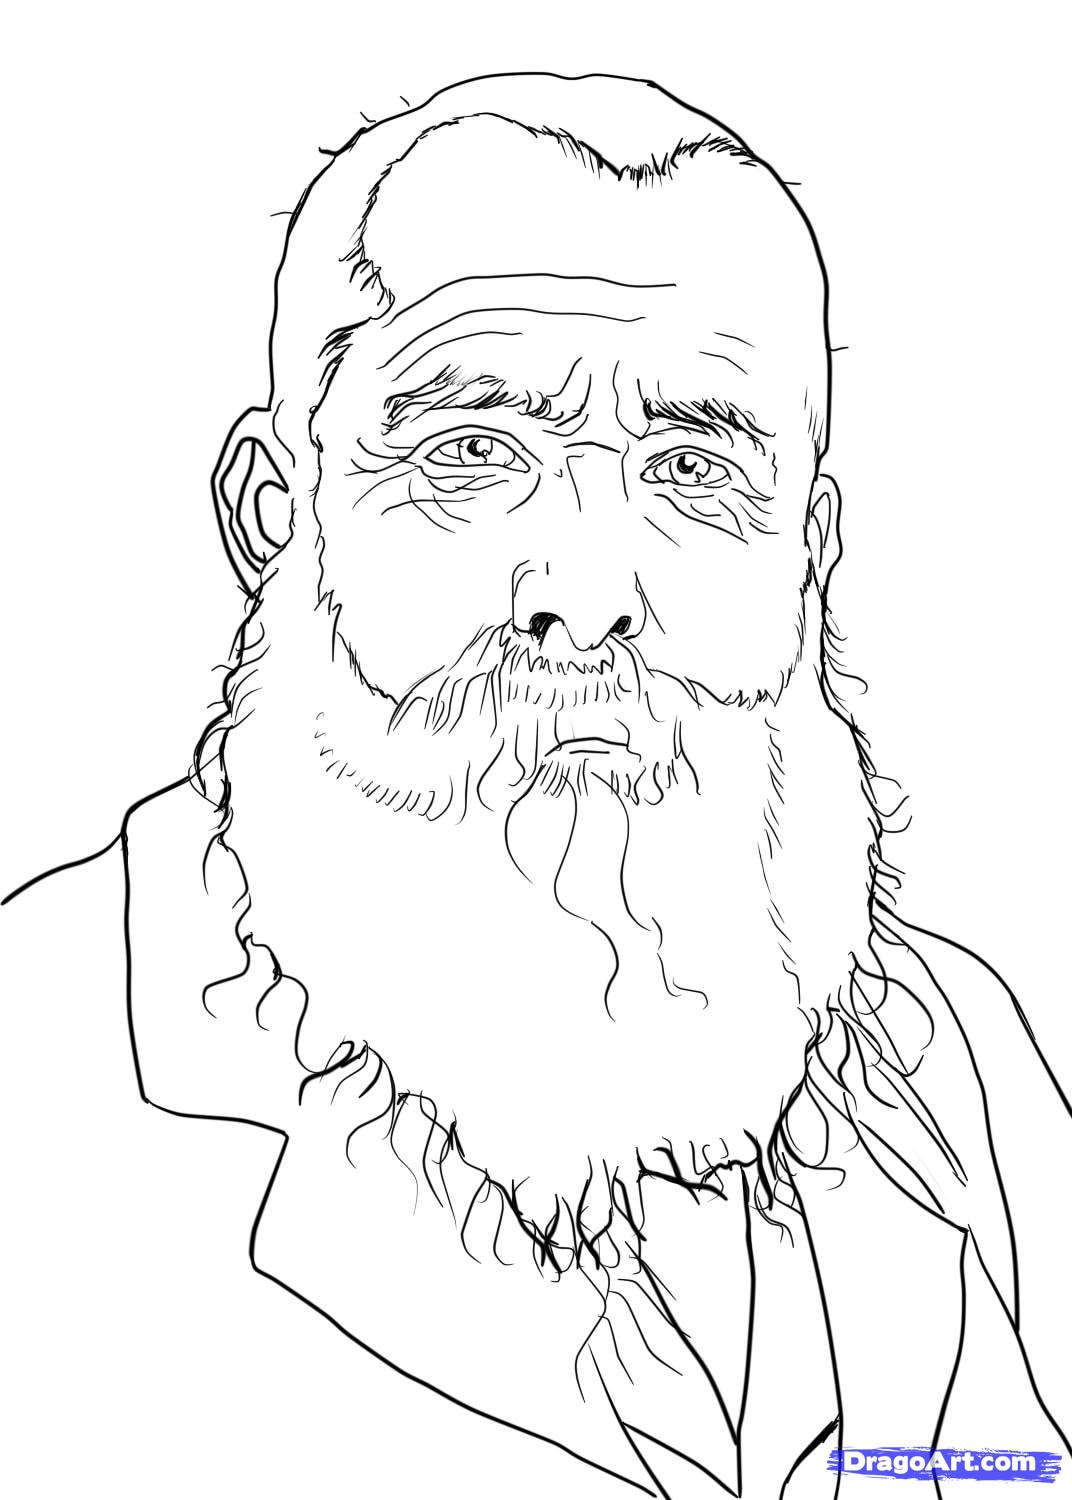 1072x1500 Amazing Monet Coloring Pages Arsybarksy Best